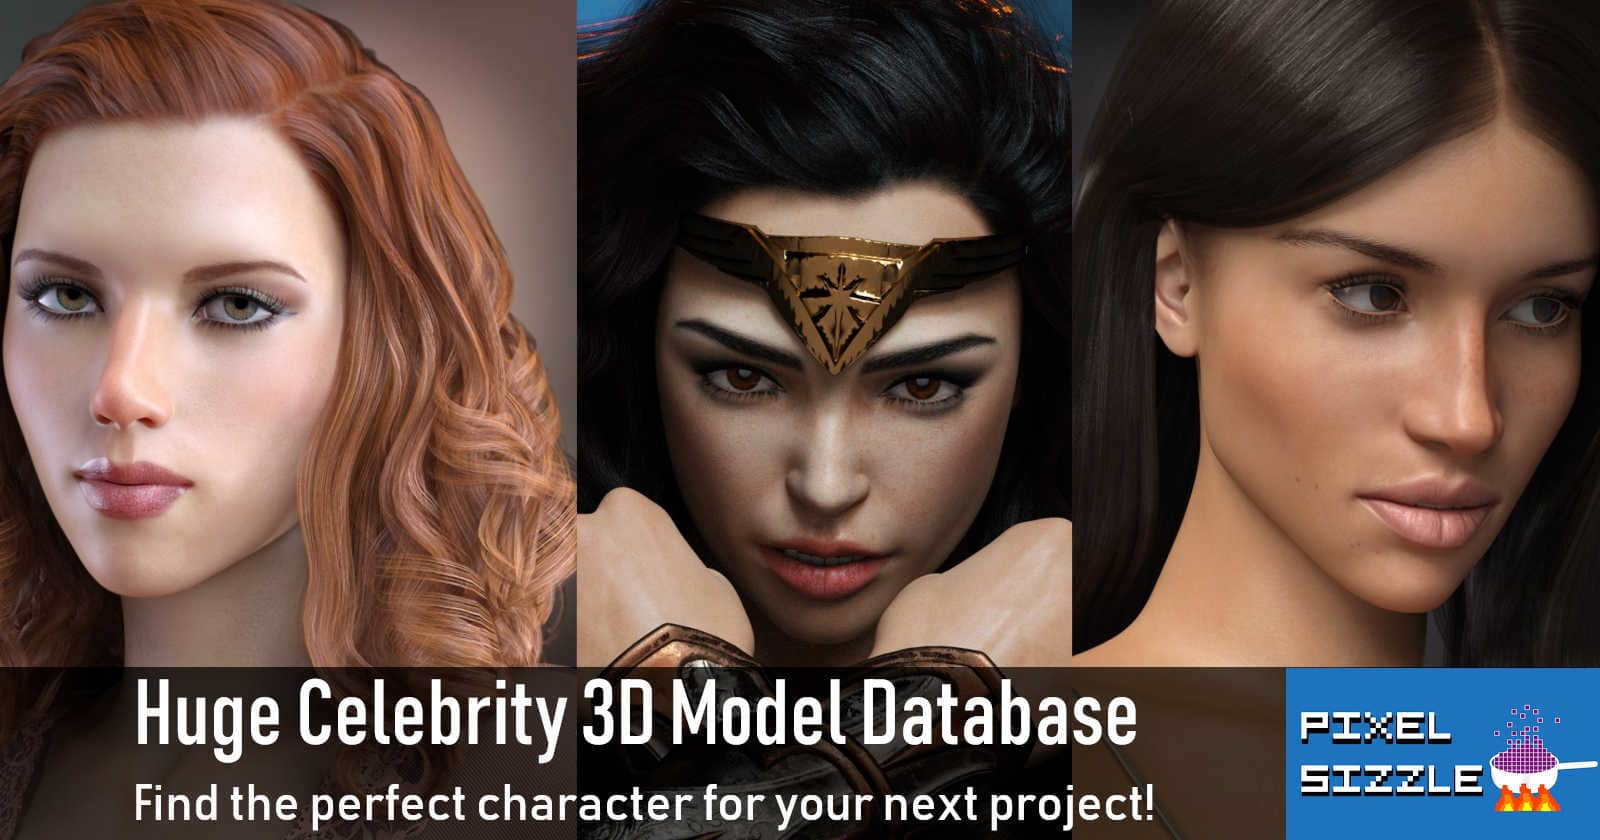 Huge Celebrity 3D Model Database here at Pixelsizzle.com